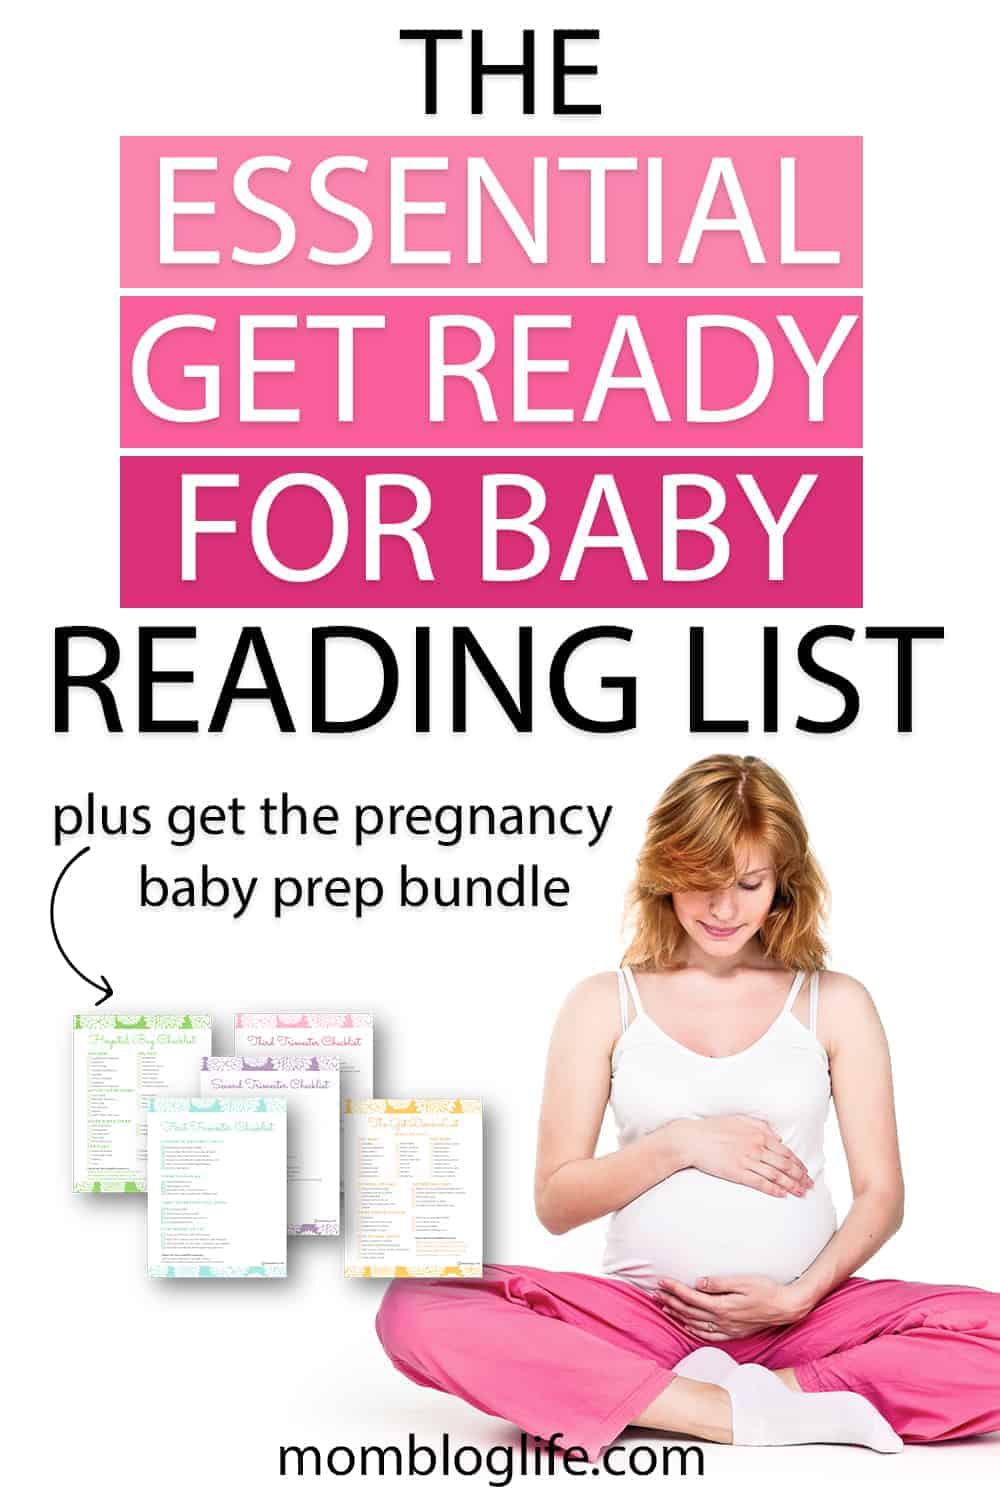 The essential get ready for baby reading list